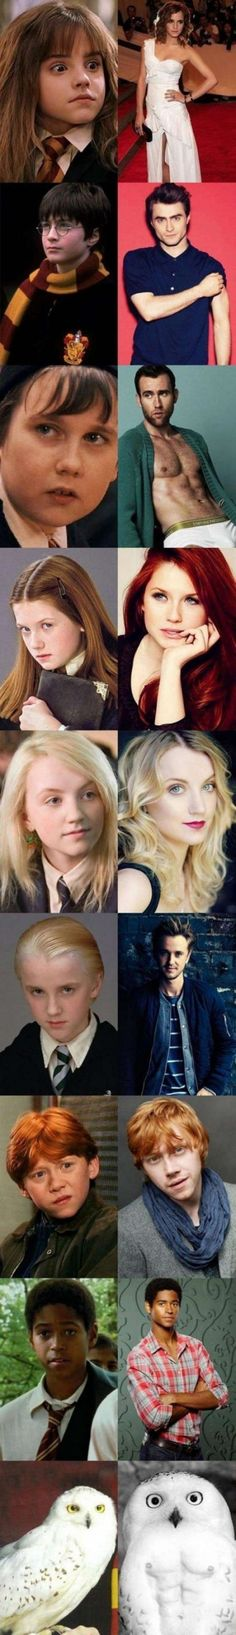 Harry Potter, Then V Now, The Last One Is My Favourite!